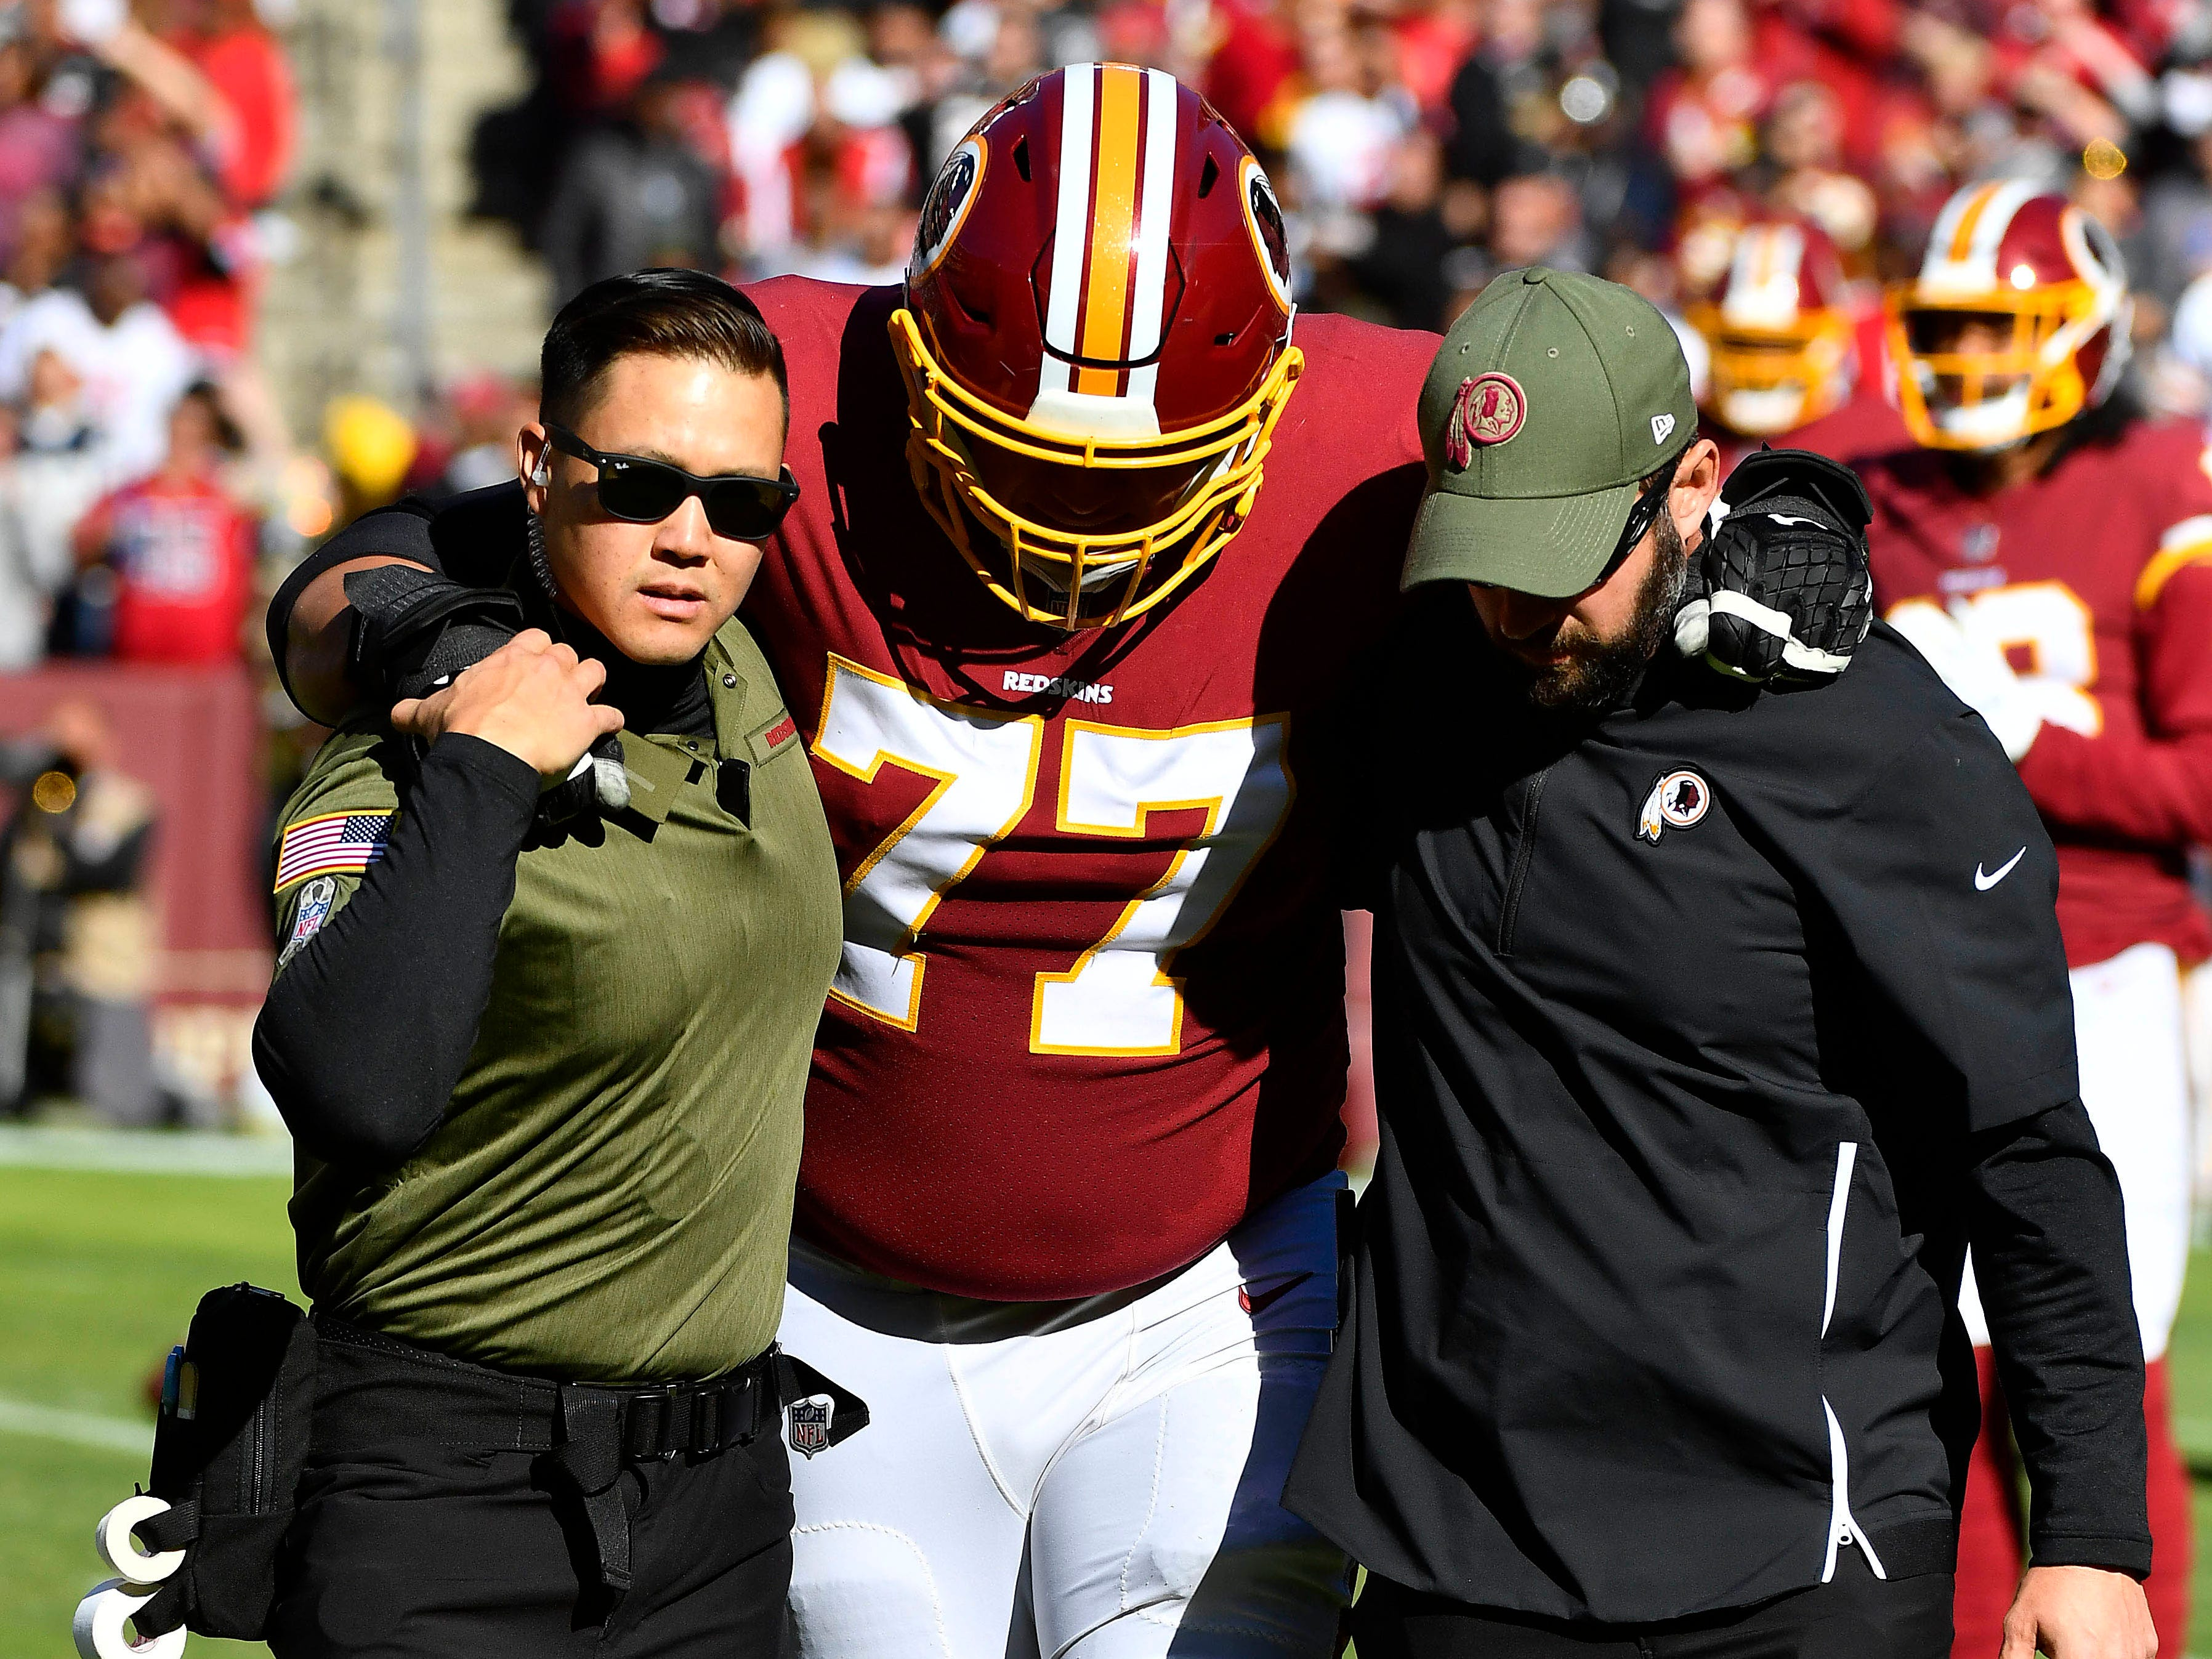 Shawn Lauvao, offensive guard, Washington Redskins (torn ACL, out for season)